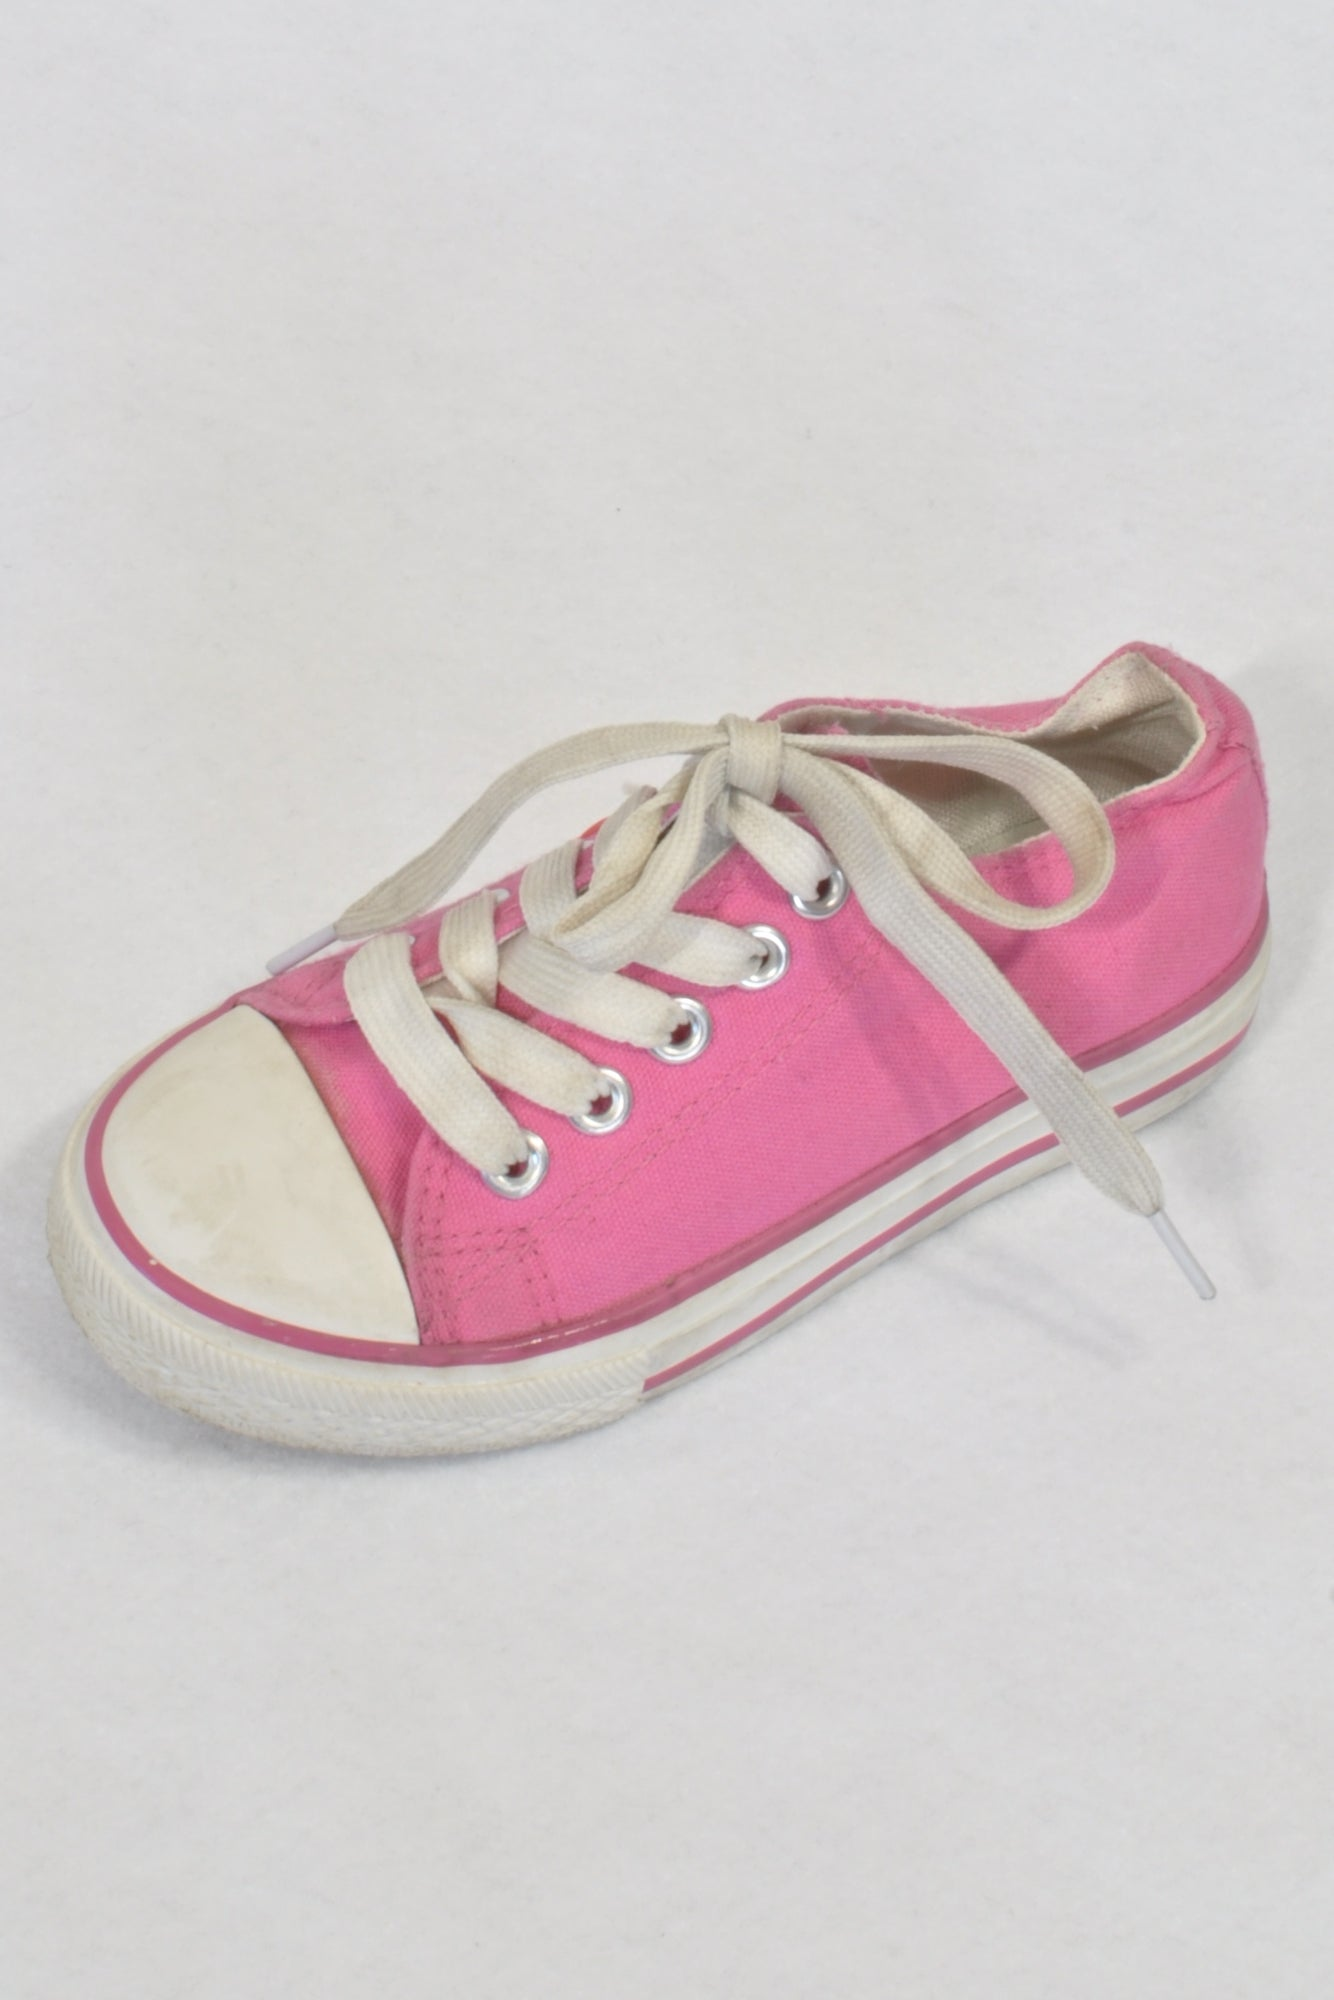 Alive Pink Tekkies Size 9 5 Lace Up Shoes Girls 3 4 years – ce More